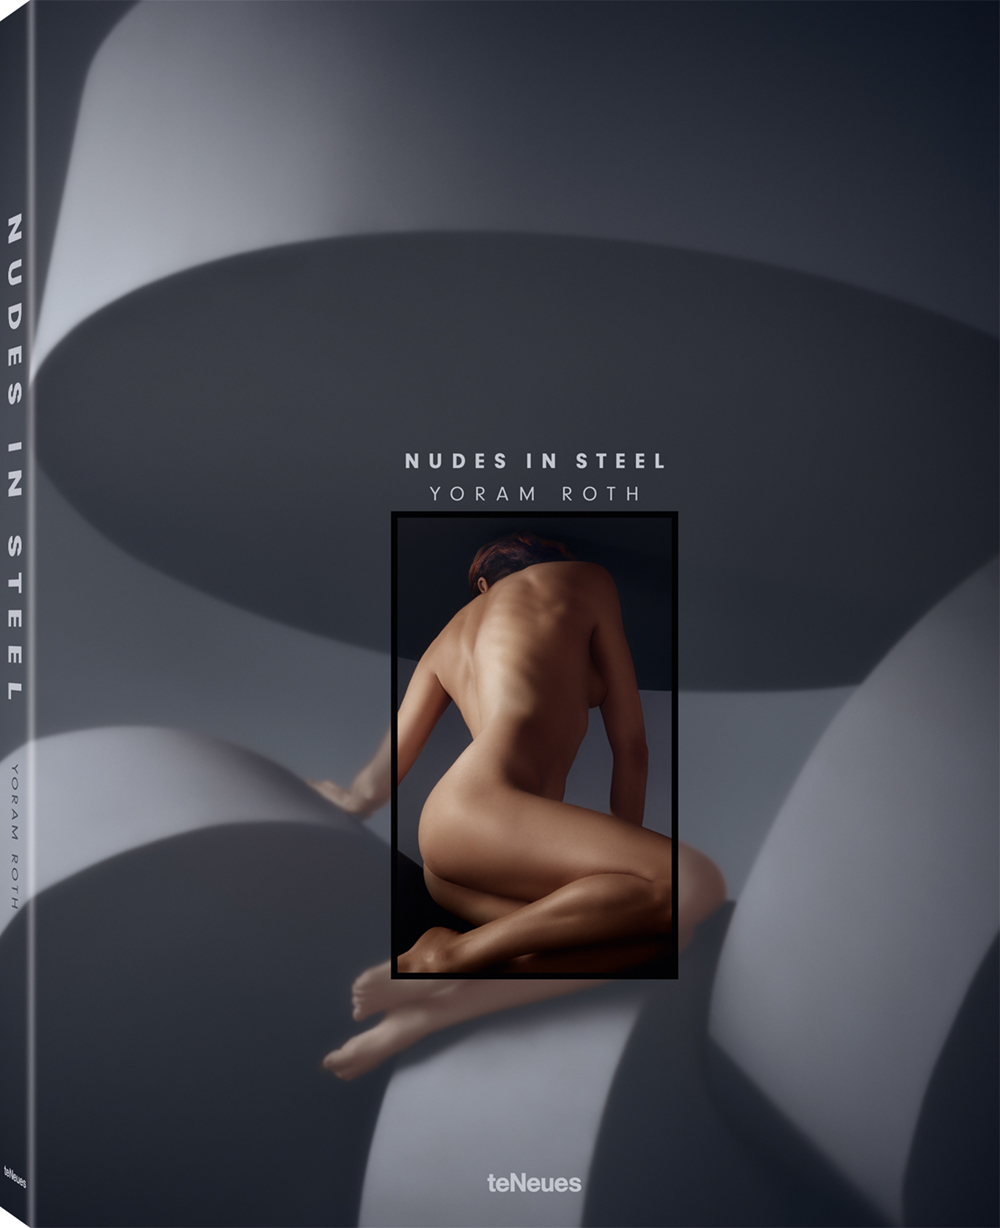 © Nudes in Steel by Yoram Roth, published by teNeues, € 50, www.teneues.com , Roarie turning away, Brutalism, Photo © 2018 Yoram Roth. All rights reserved. www.yoramroth.com